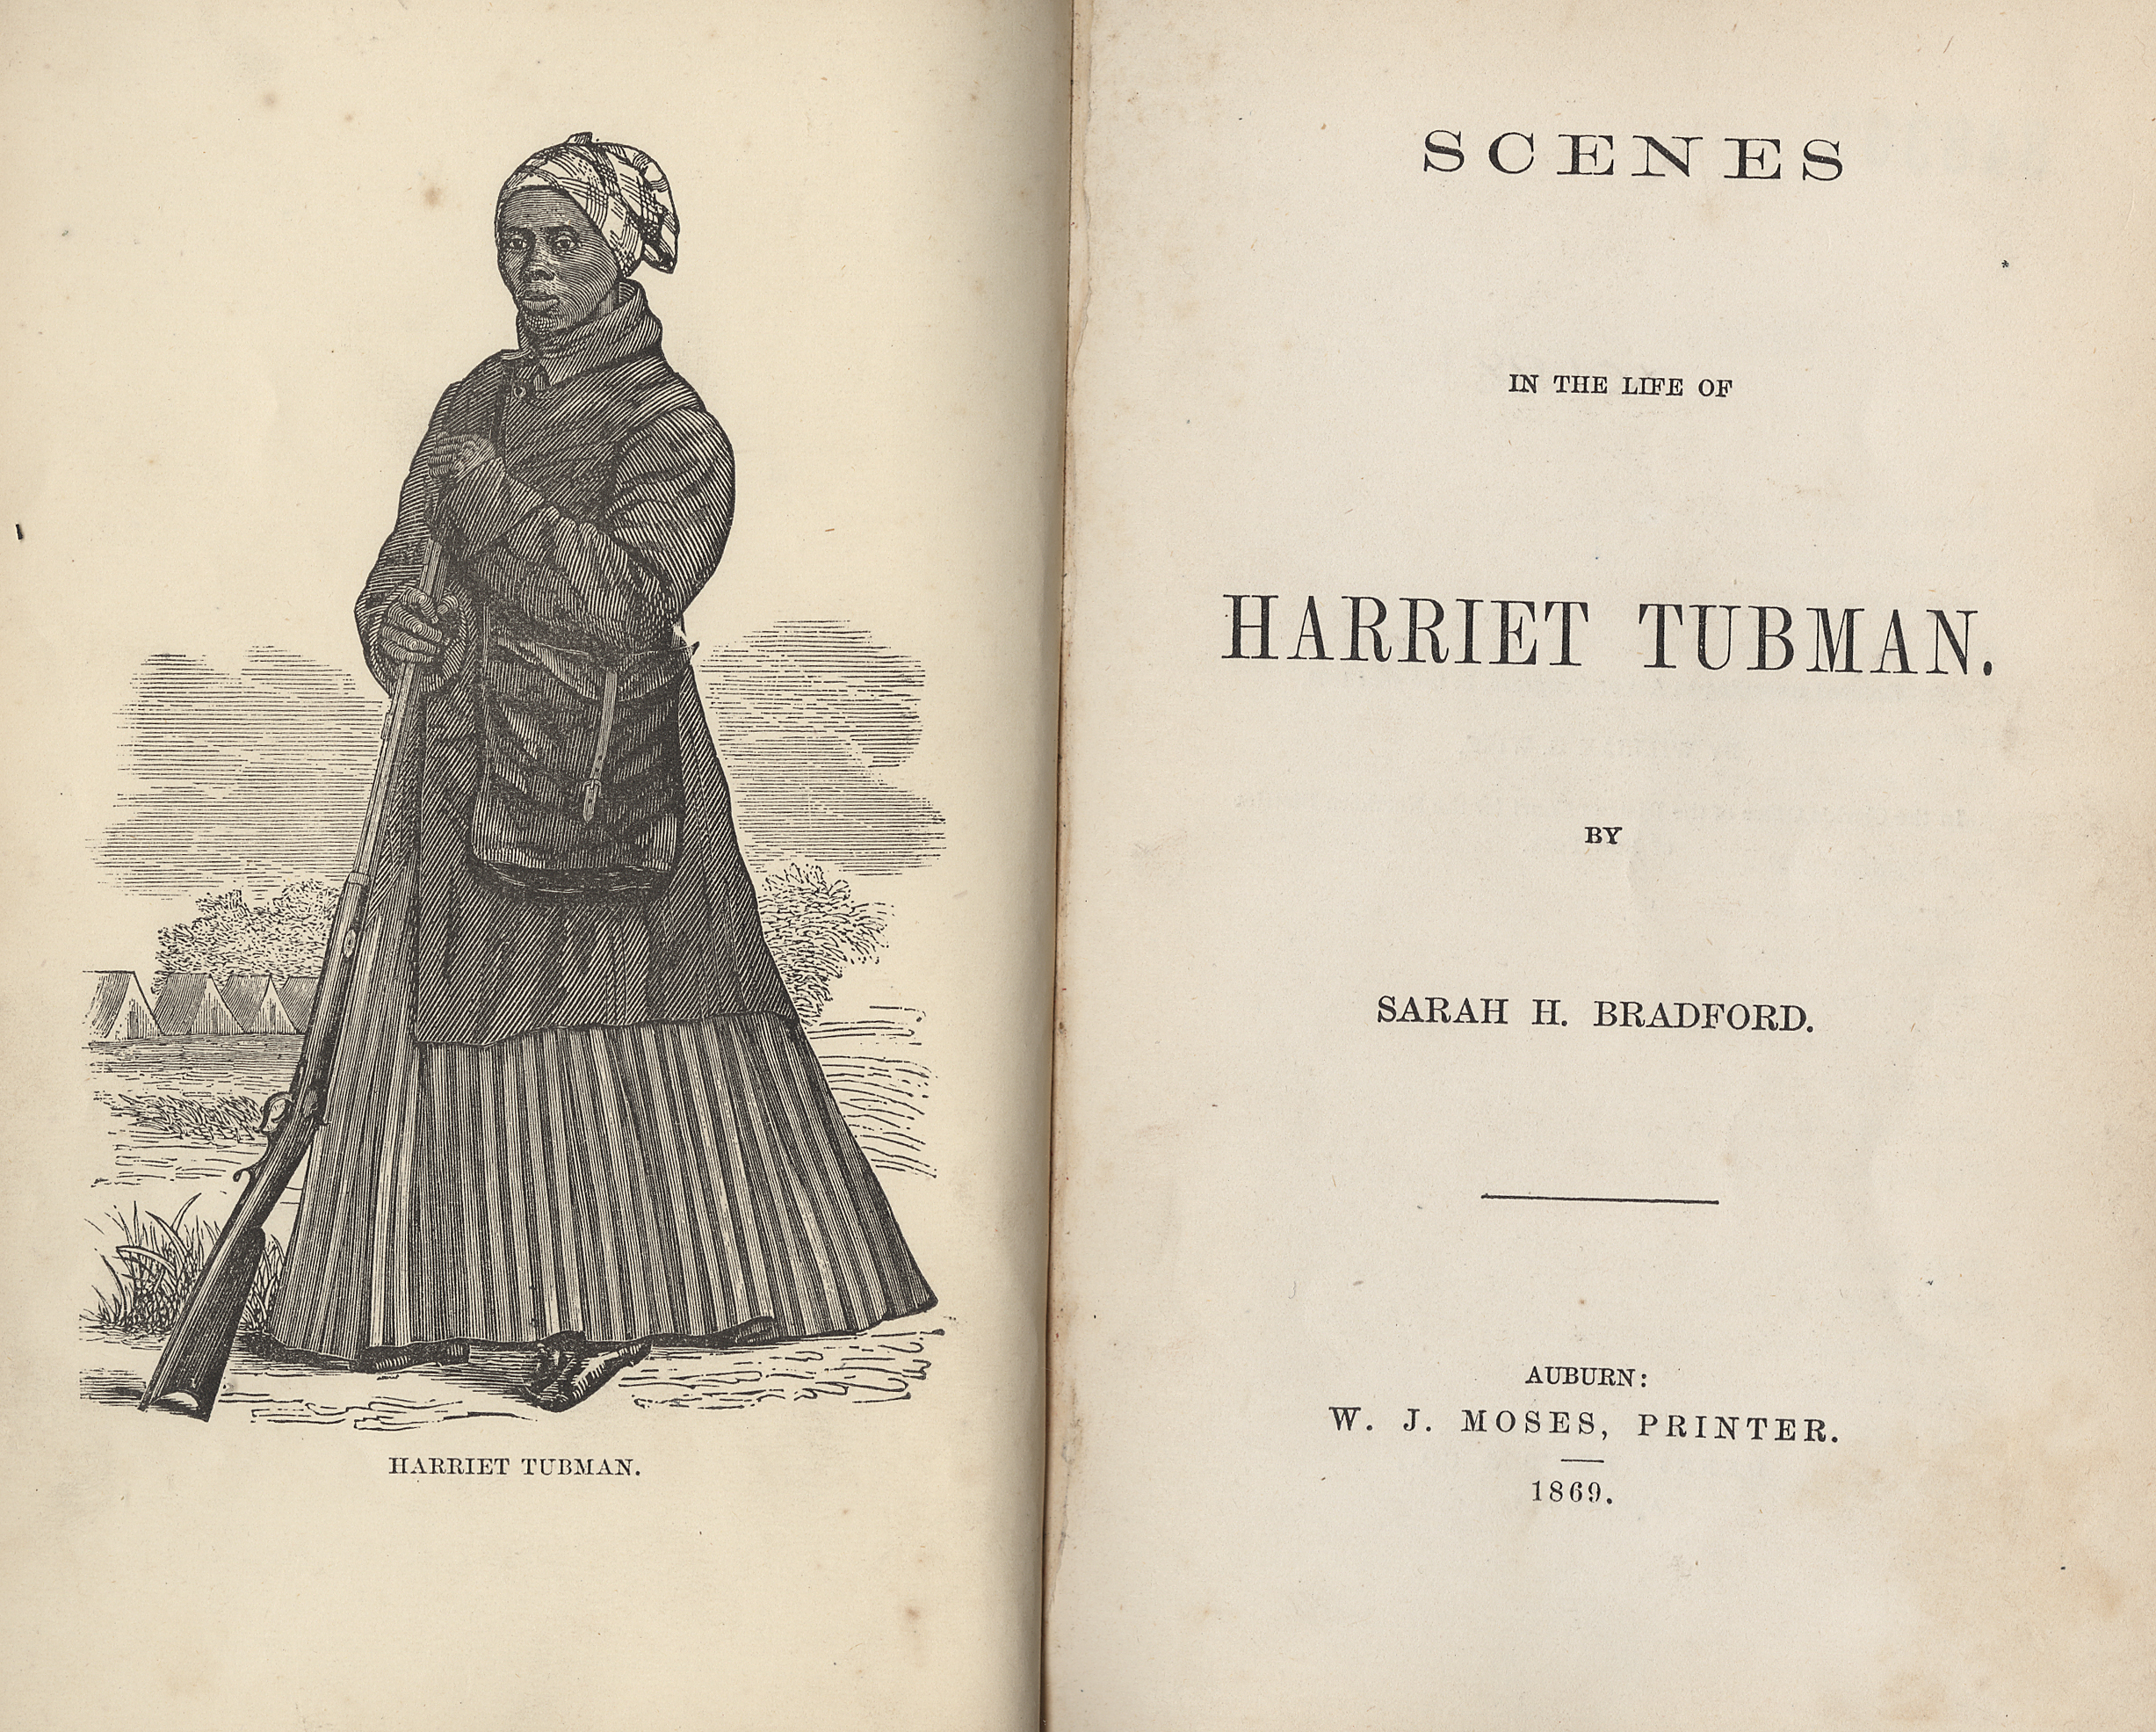 harriet tubman research paper View essay - research paper - harriet tubman, mary mcleod bethune, and rosa parks from afa 2000 at university of florida valerie garcia-arrese august 2, 2014 afa2000 research paper harriet tubman.